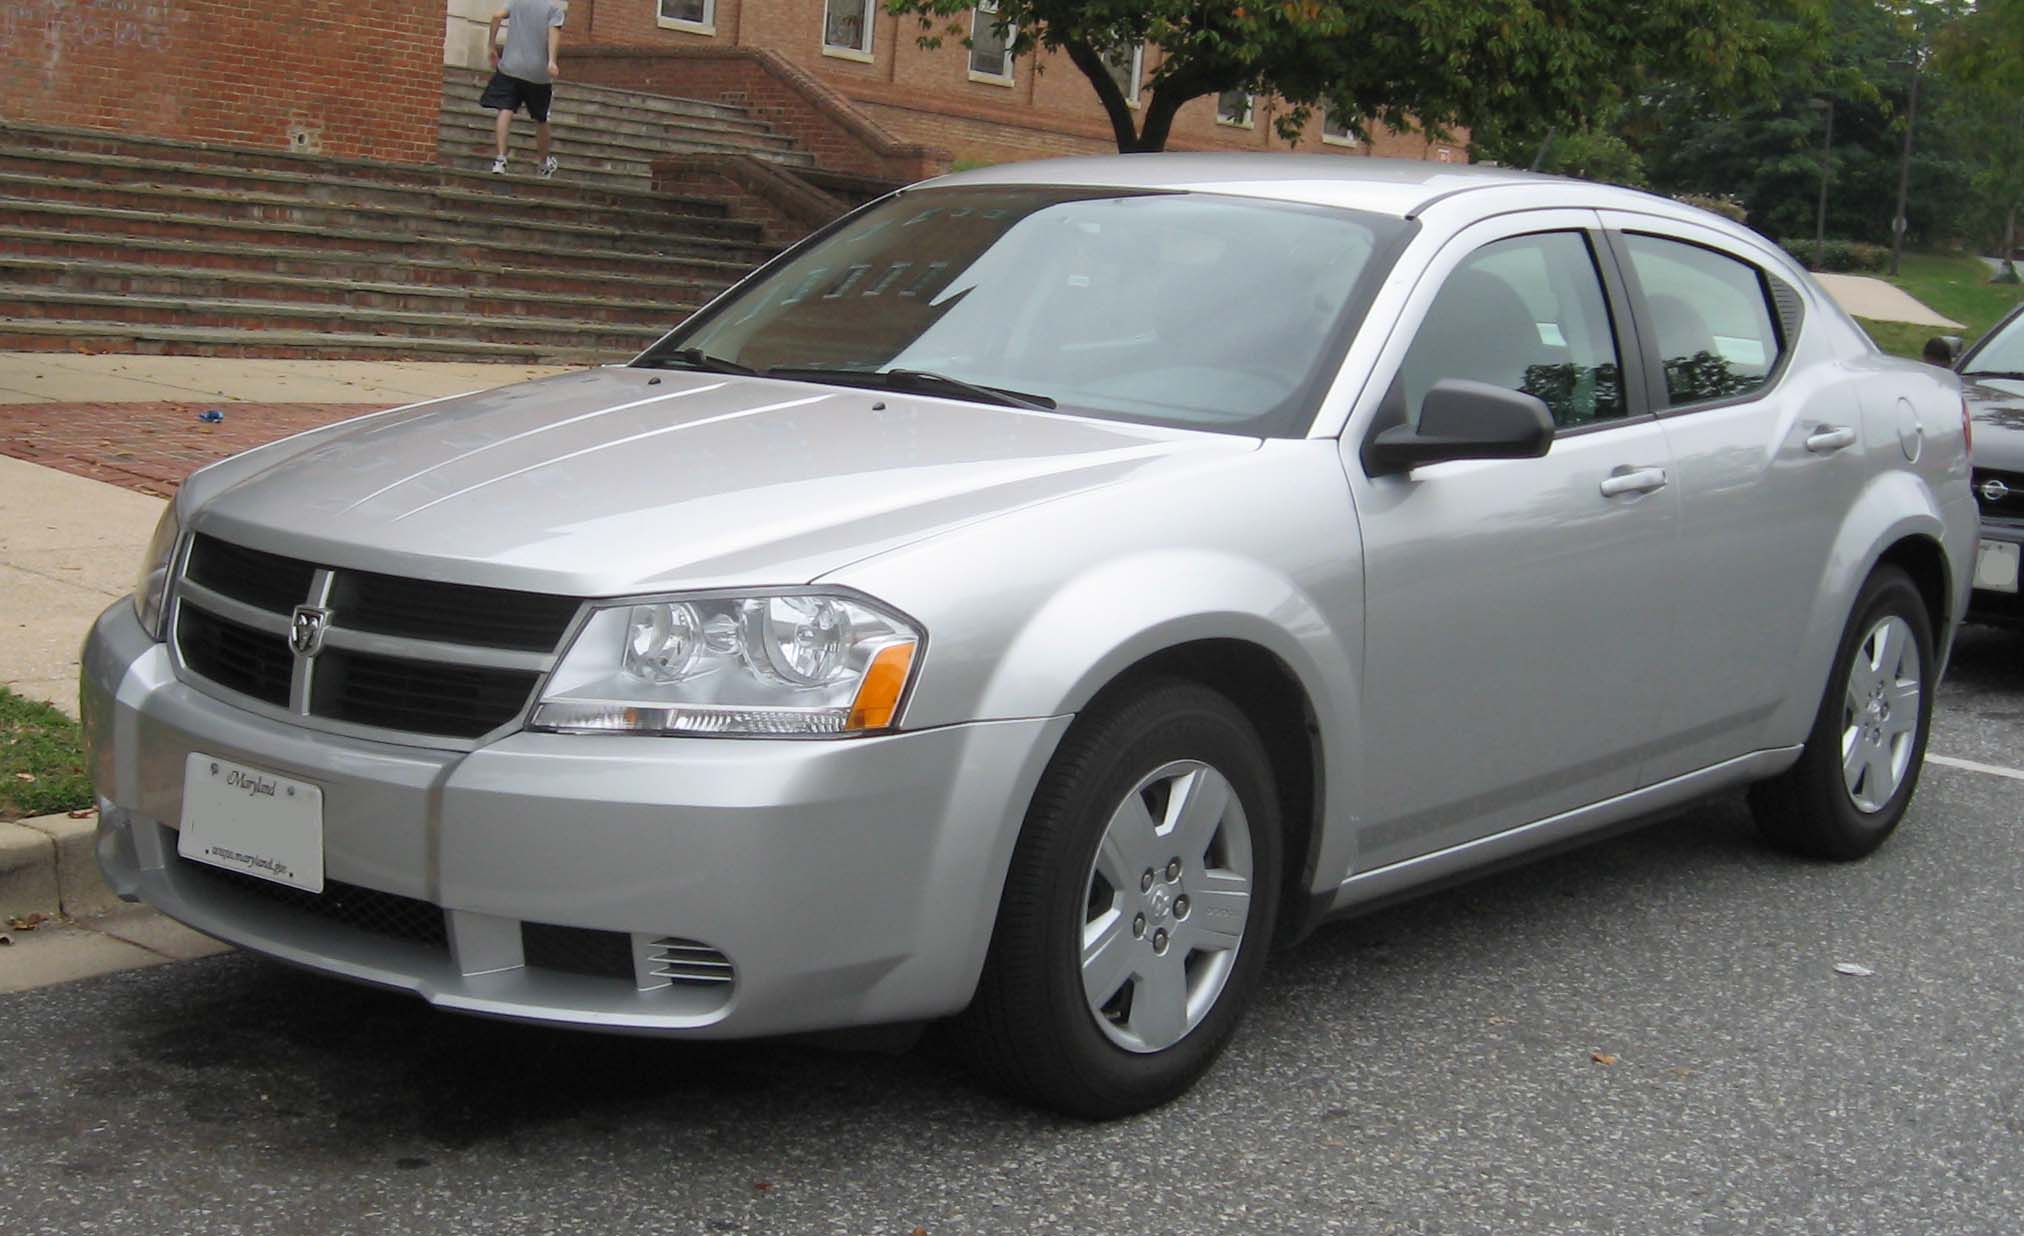 Dodge Avenger Glass Repair & Replacement